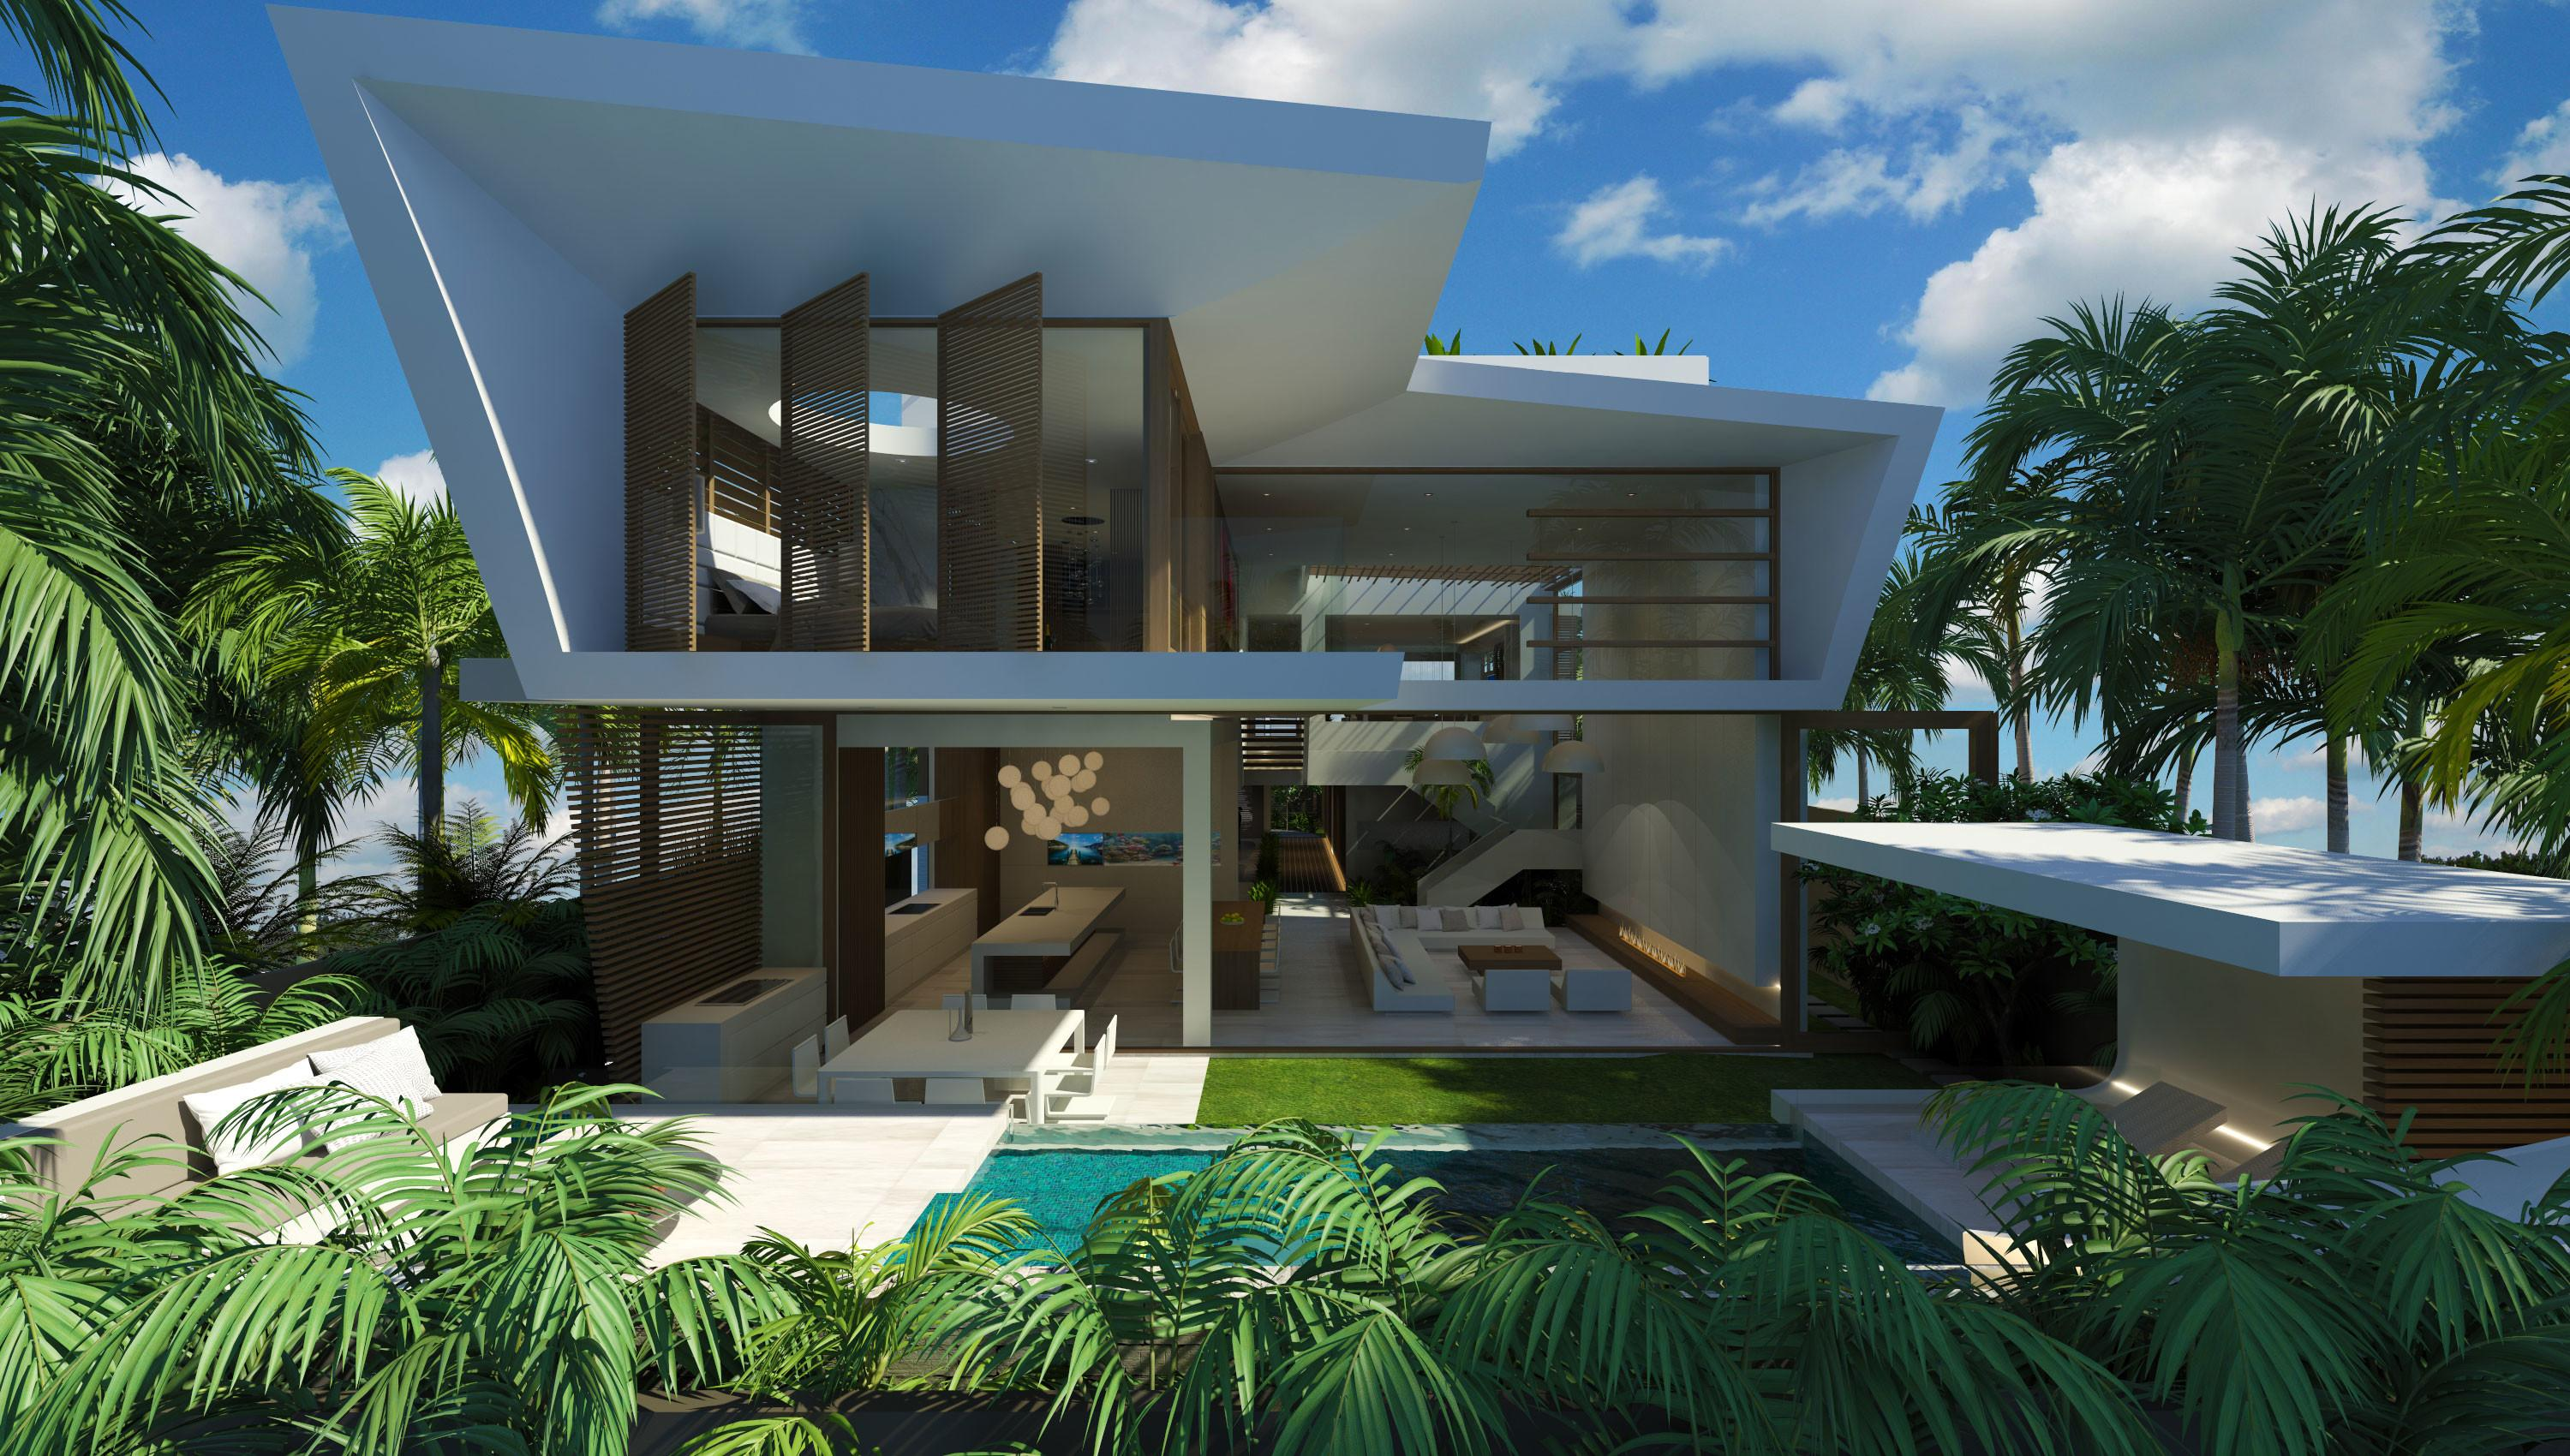 Modern Beach House Location Sunshine Coast Qld Dma Homes